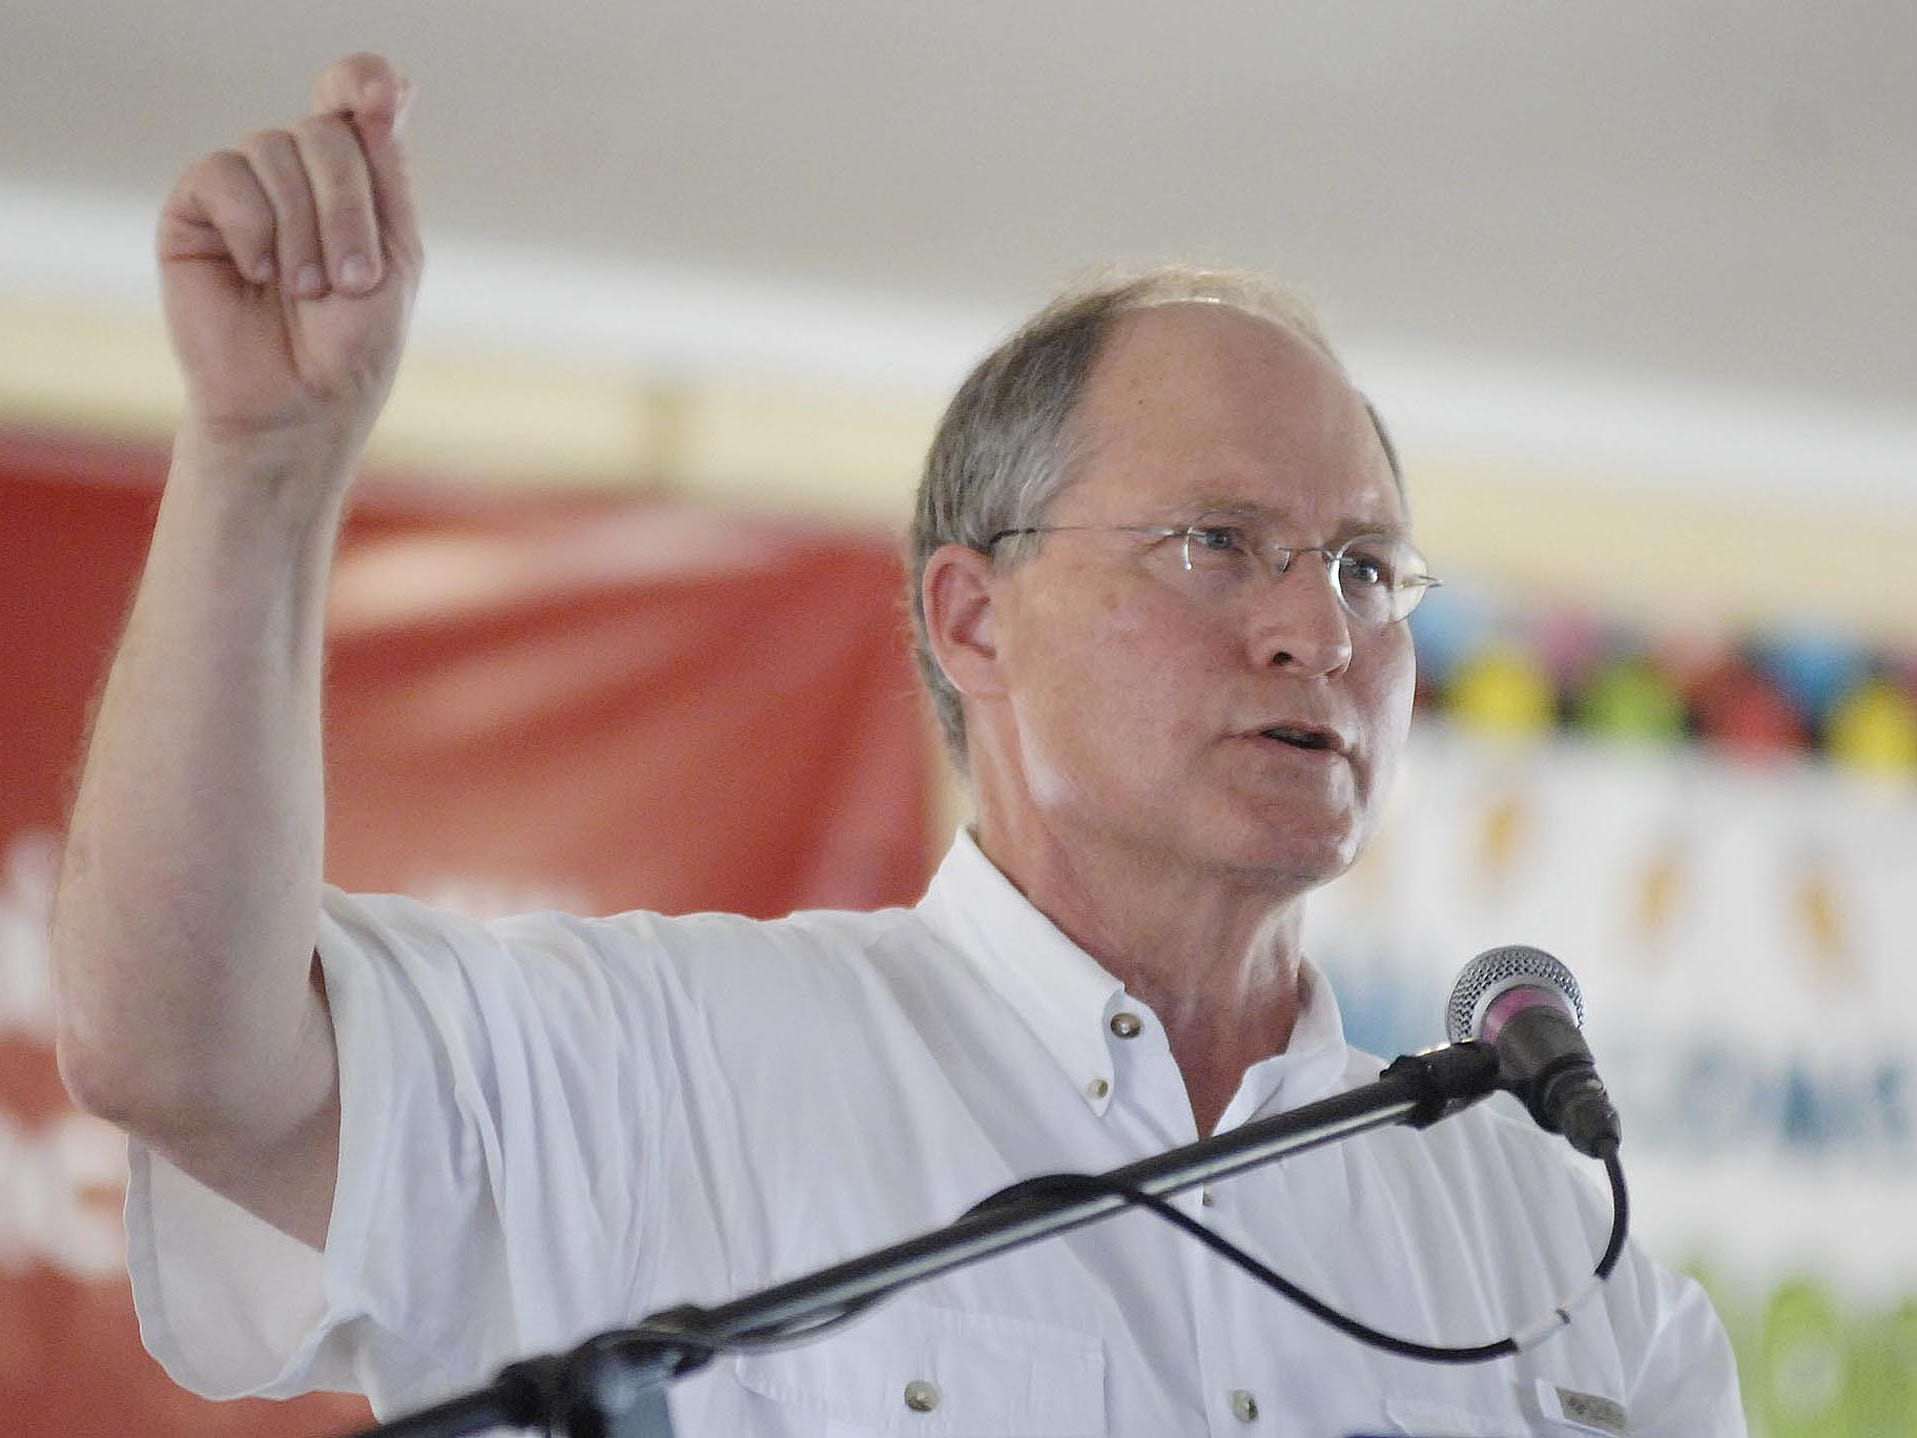 Mississippi Supreme Court Chief Justice Bill Waller, Jr. speaks at the Neshoba County Fair.